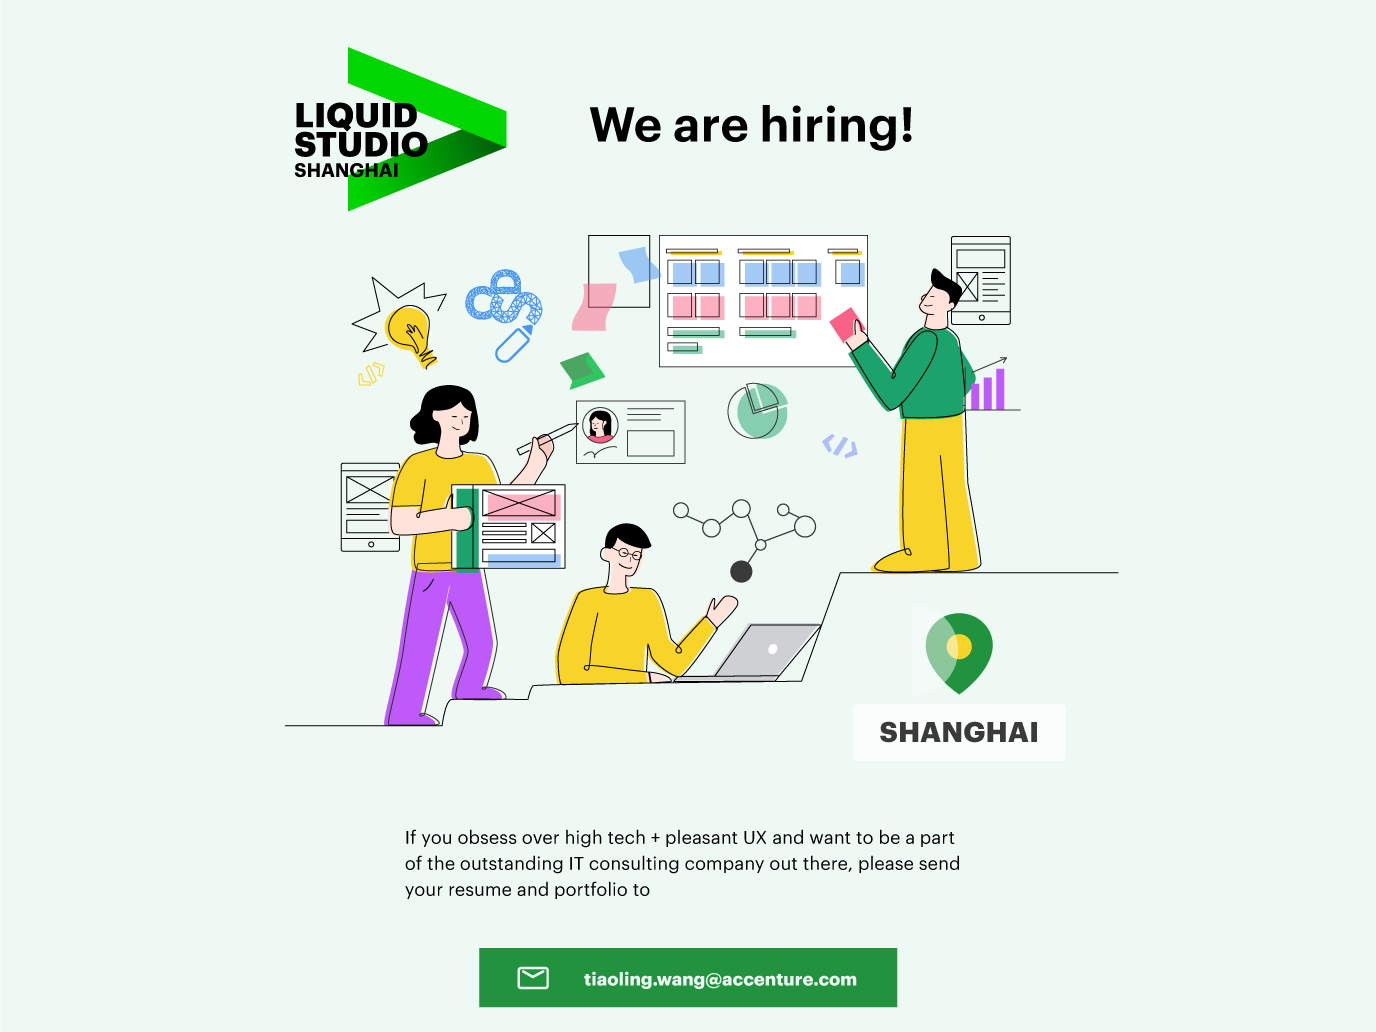 Liquid Studio Recruiting Poster identity illustrator ux flat minimal web ui vector illustration design